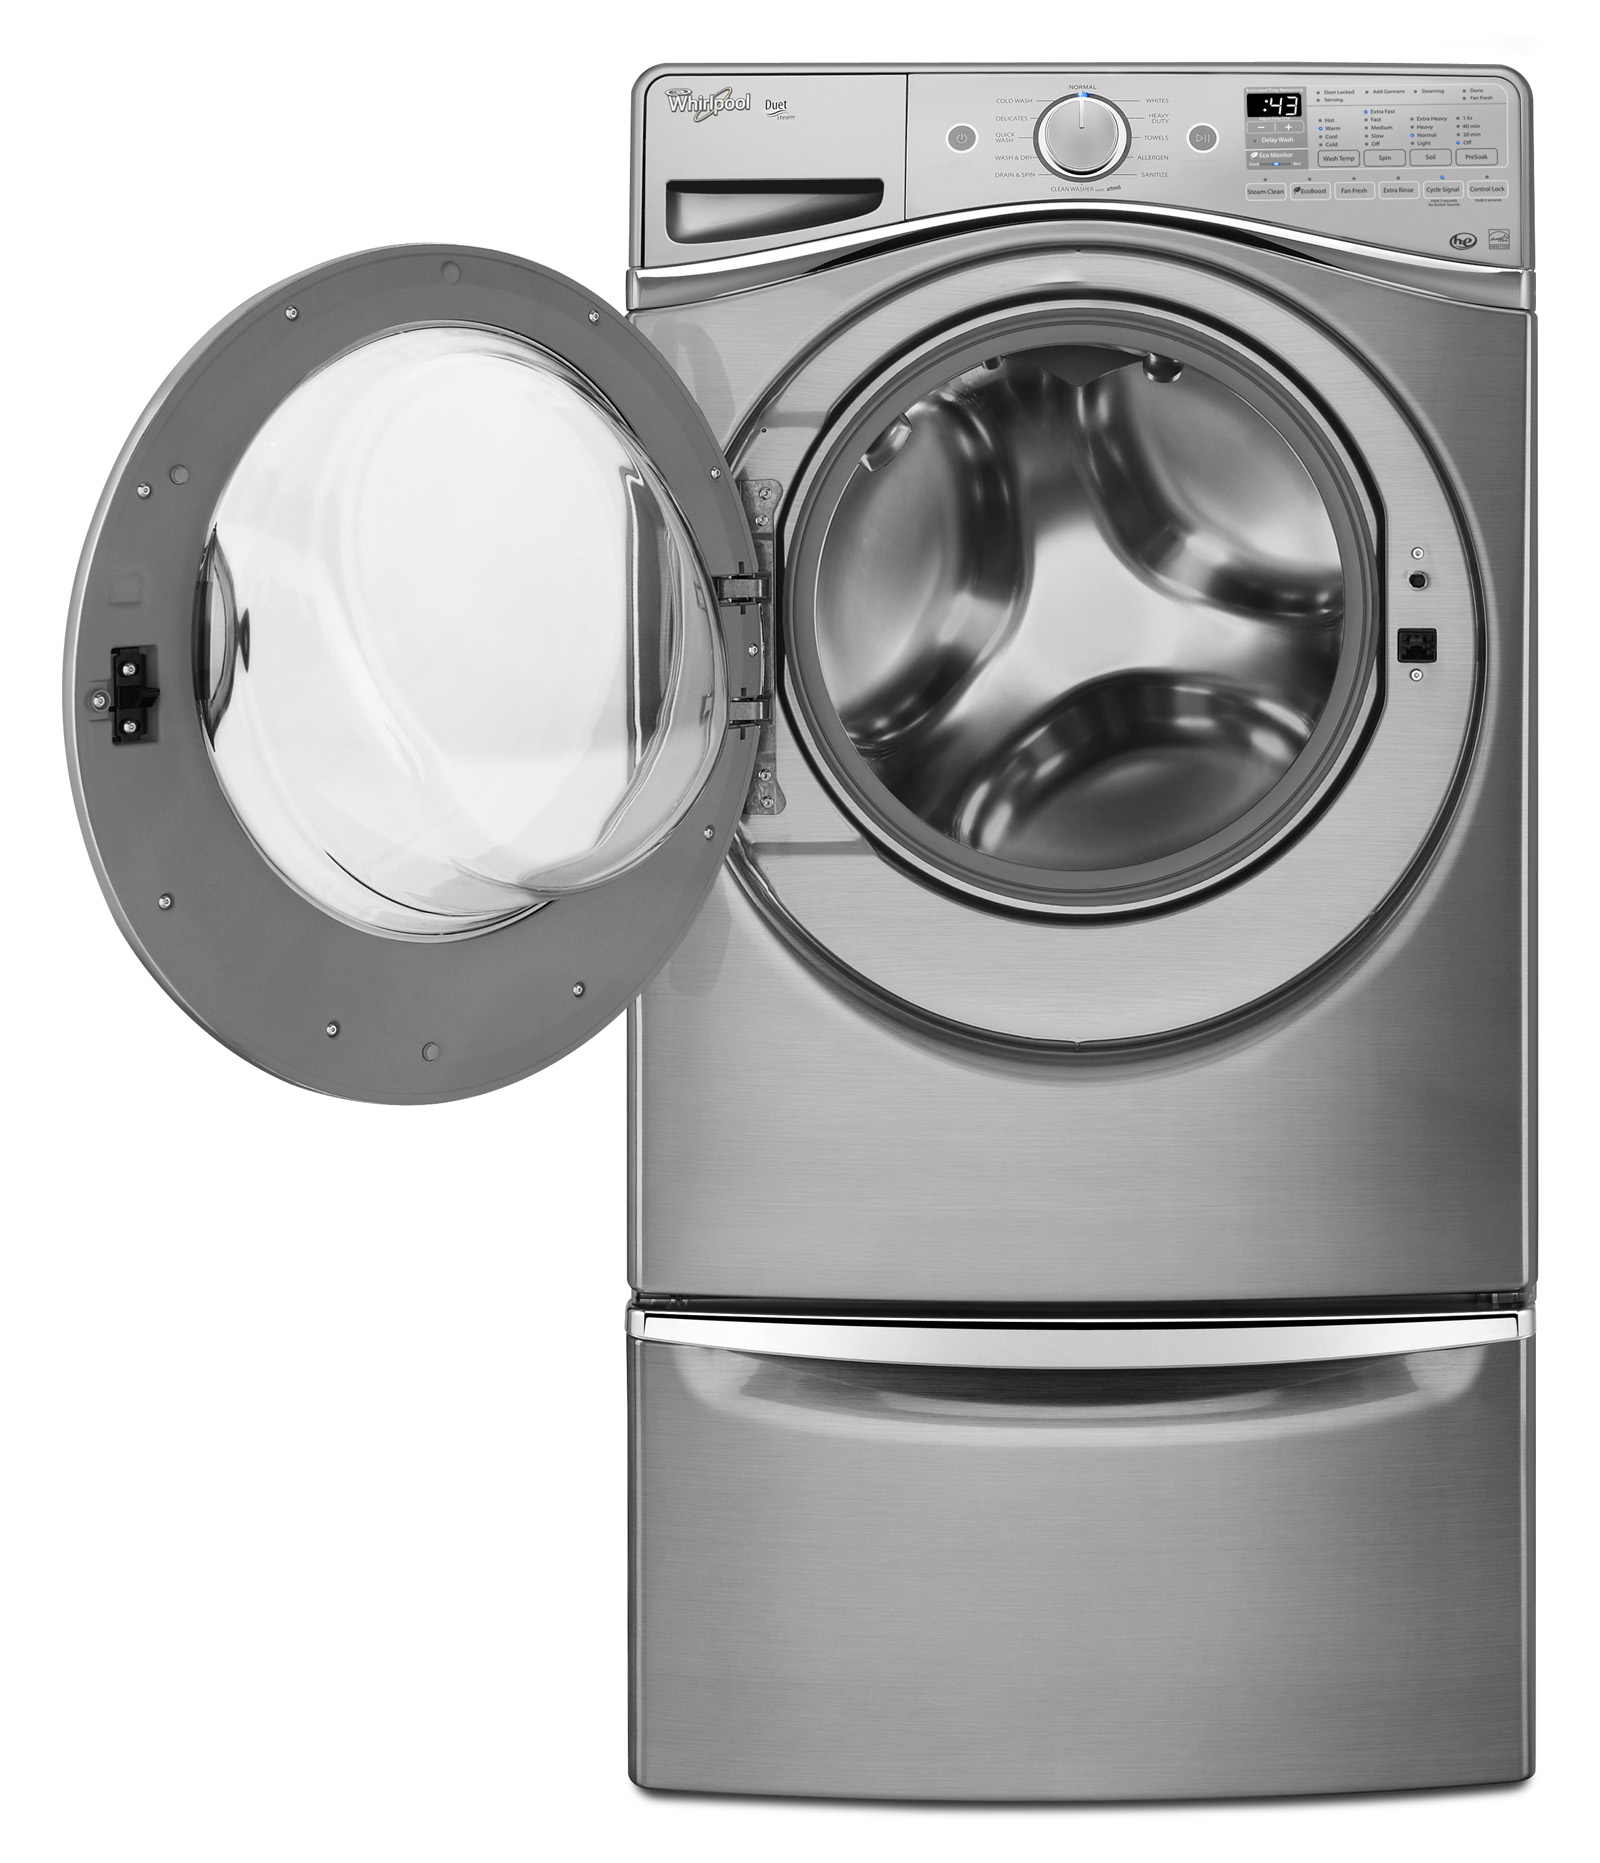 Whirlpool WFW95HEDU 4.5 cu. ft. Duet® Front-Load Washer w/ Wash and Dry Cycle - Diamond Steel